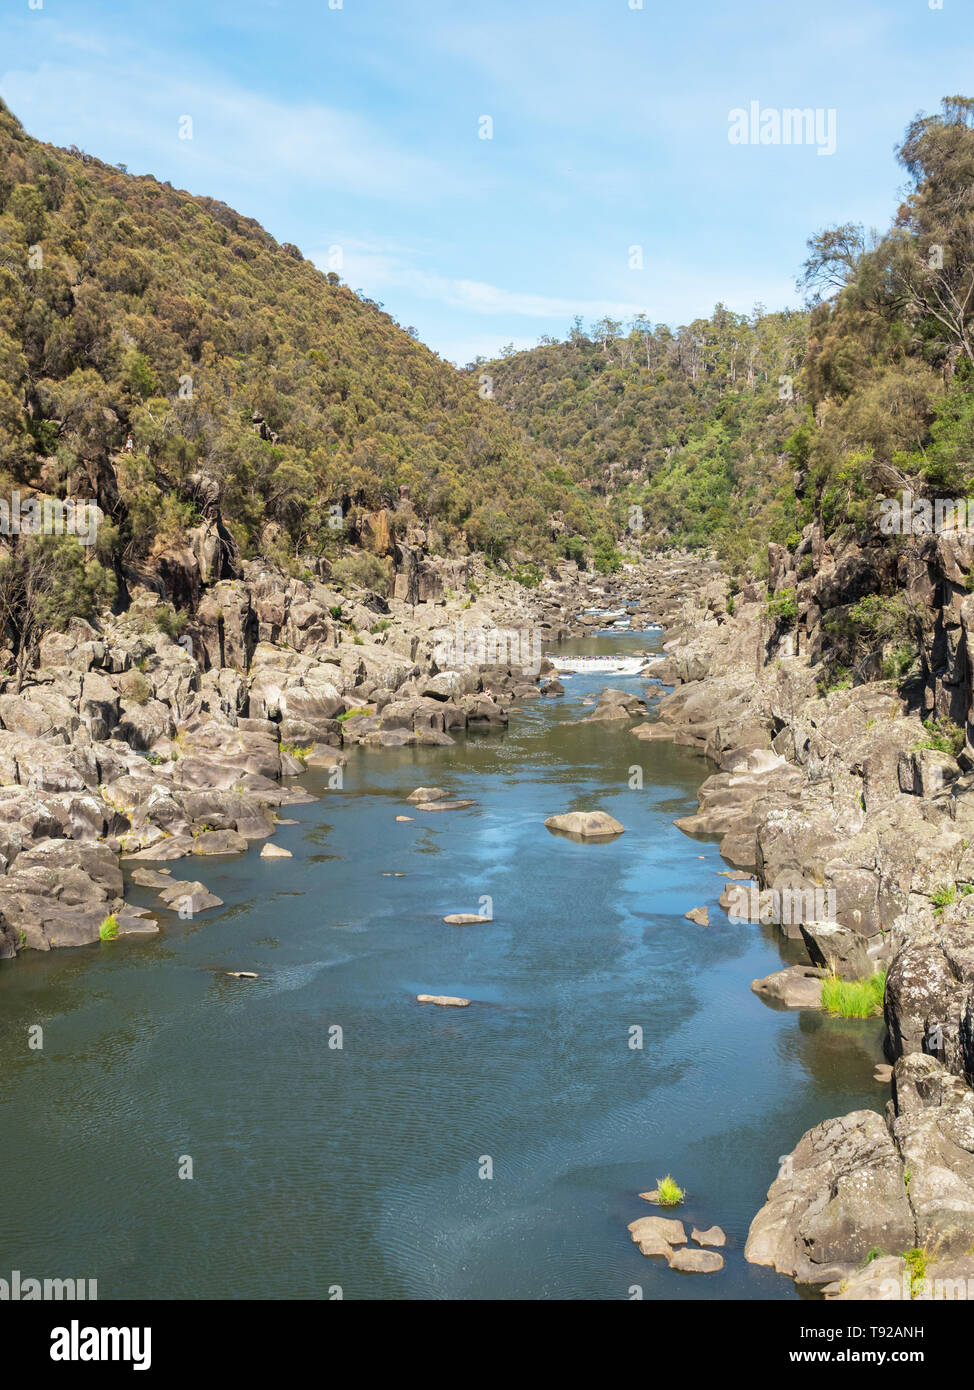 Cataract Gorge, in the lower section of the South Esk River in Launceston, Tasmania, is one of the region's premier tourist attractions. Stock Photo